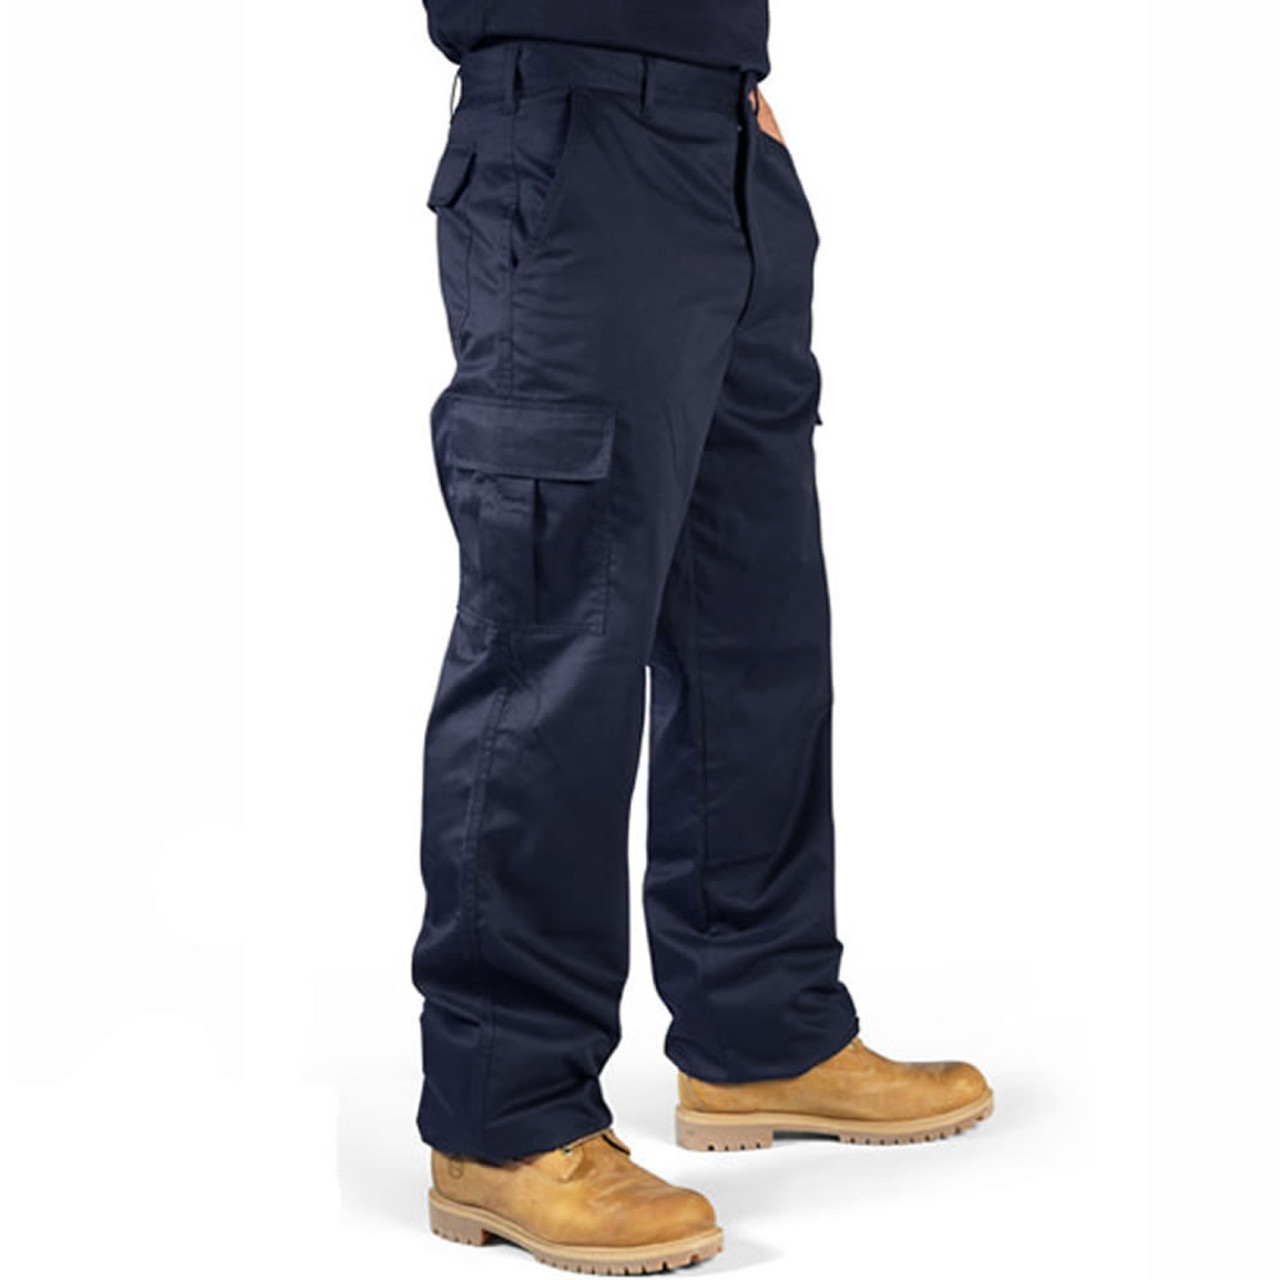 matching in colour super quality hoard as a rare commodity Cargo Pocket Combat Work Trousers Navy Blue